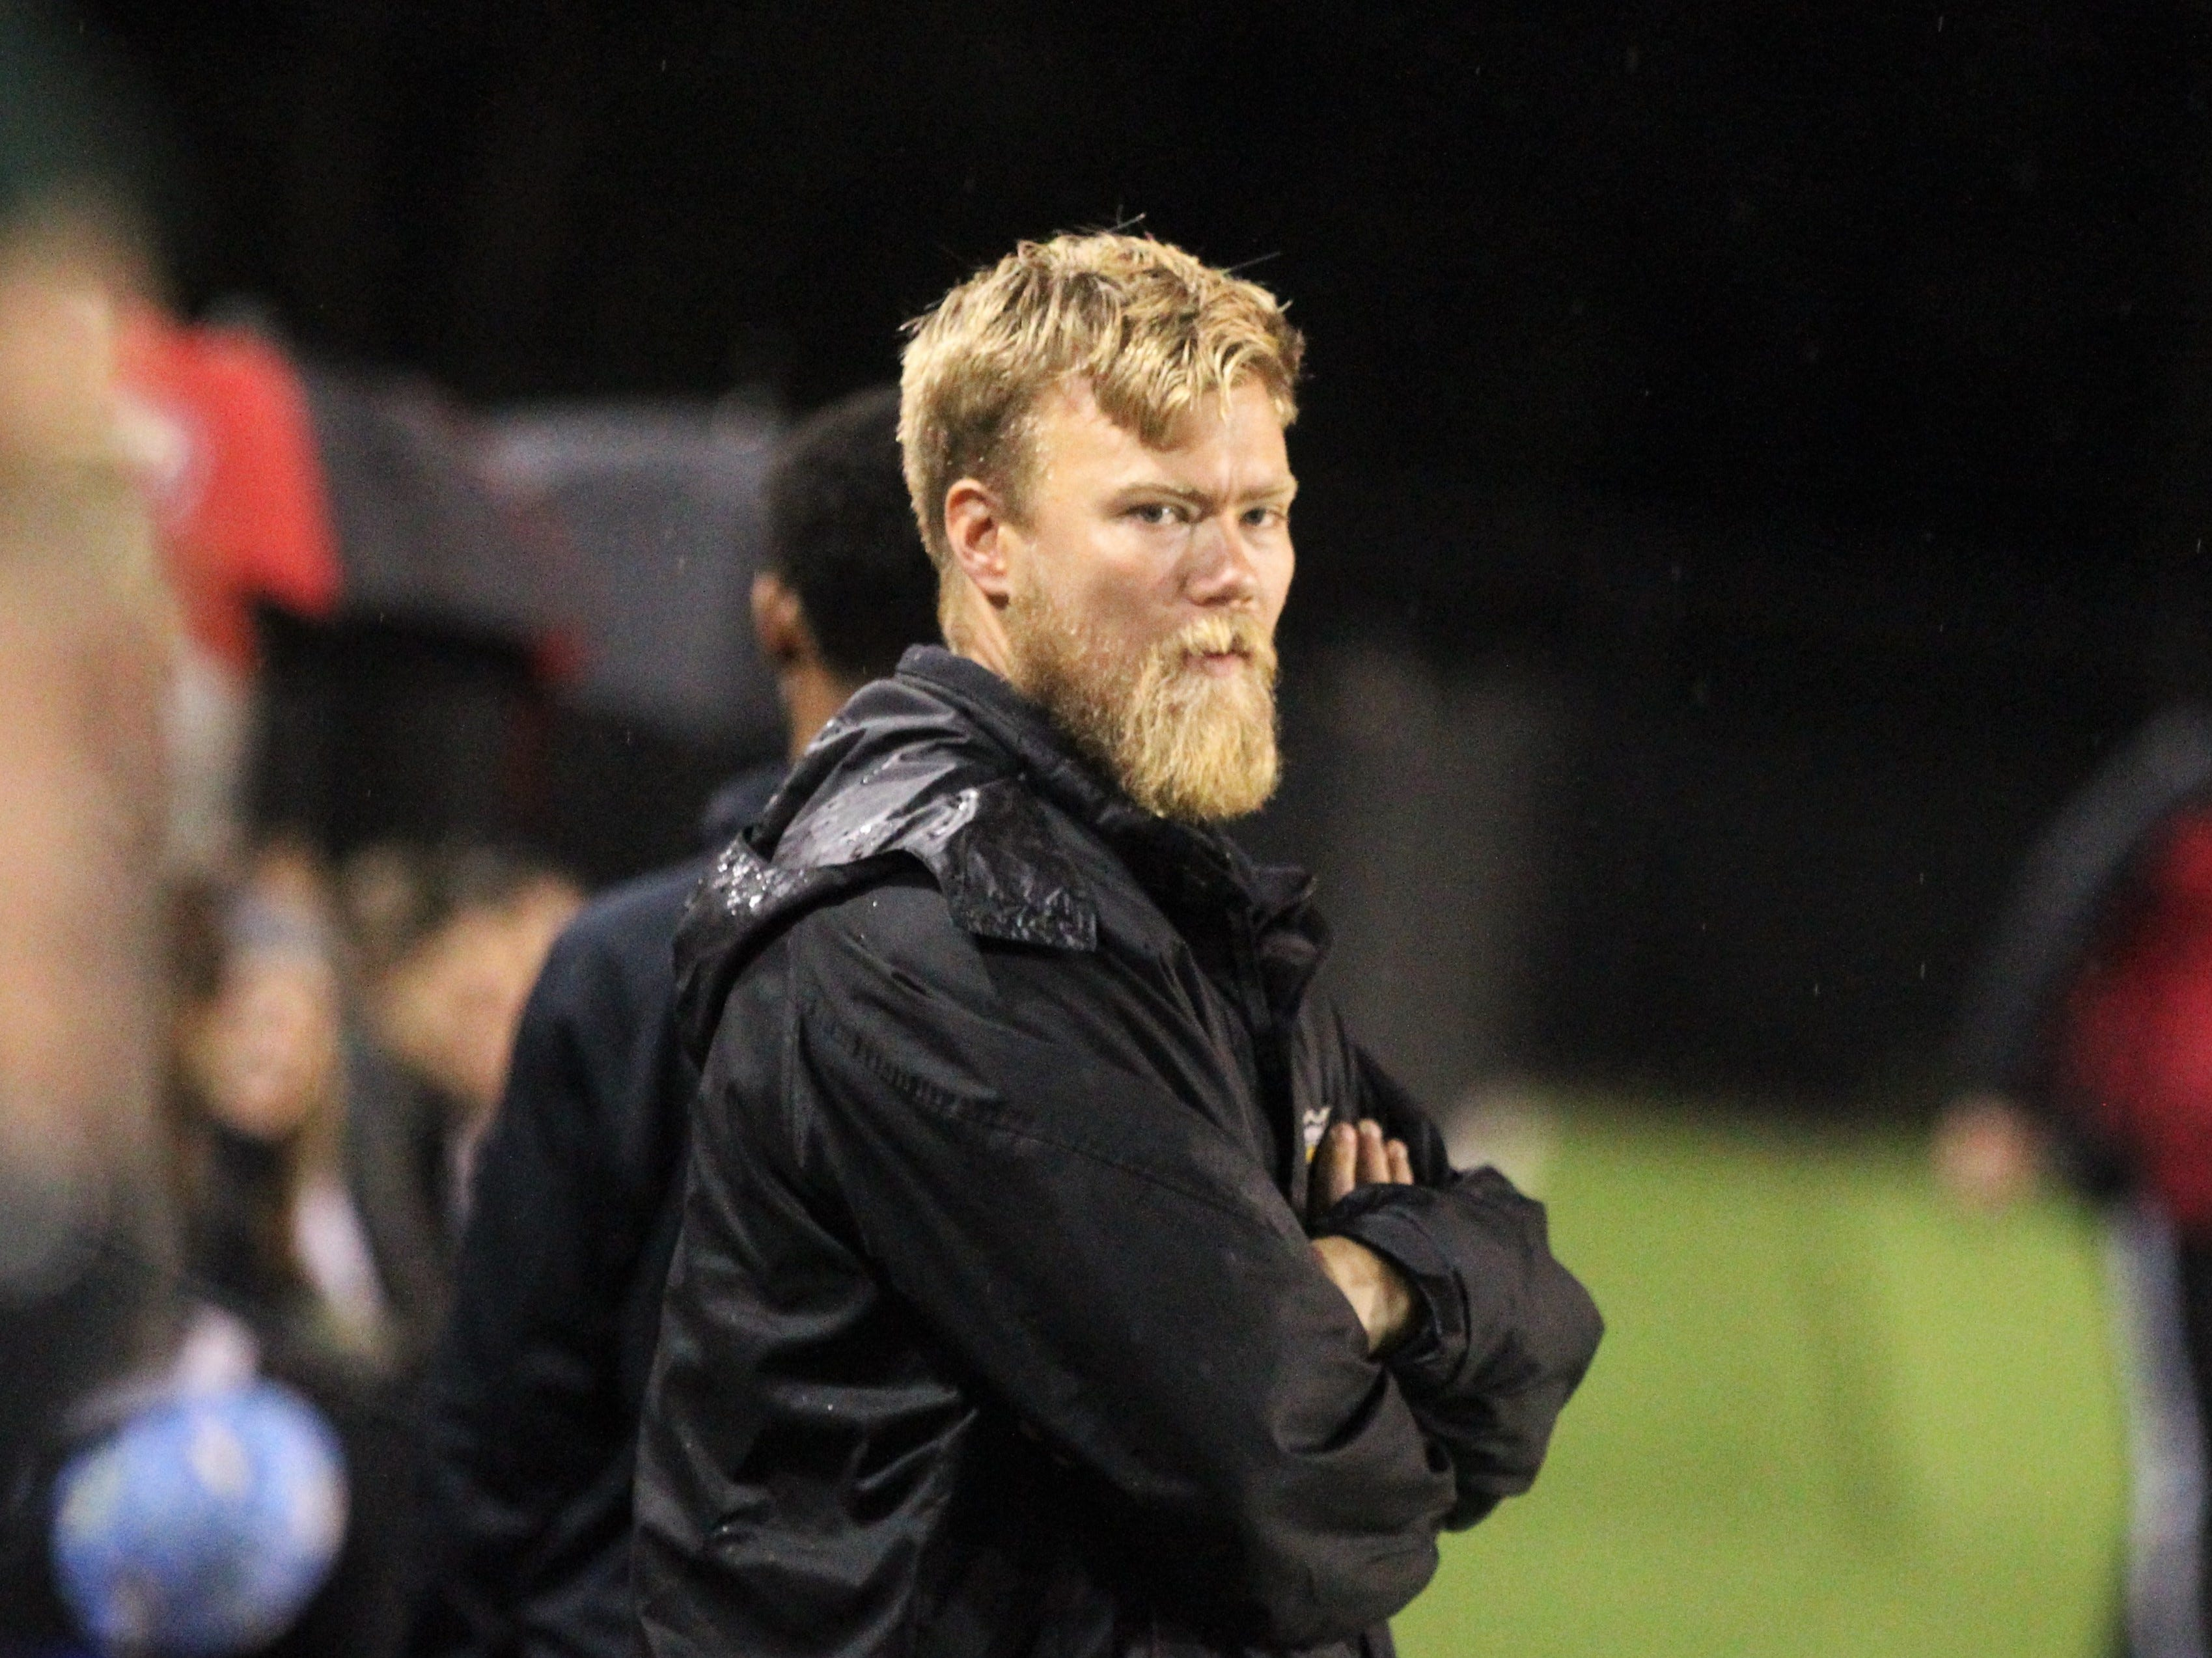 Lincoln girls soccer coach Jono Williams watches his team as Leon's girls soccer team beat Lincoln in the District 2-4A championship on Feb. 1, 2019.